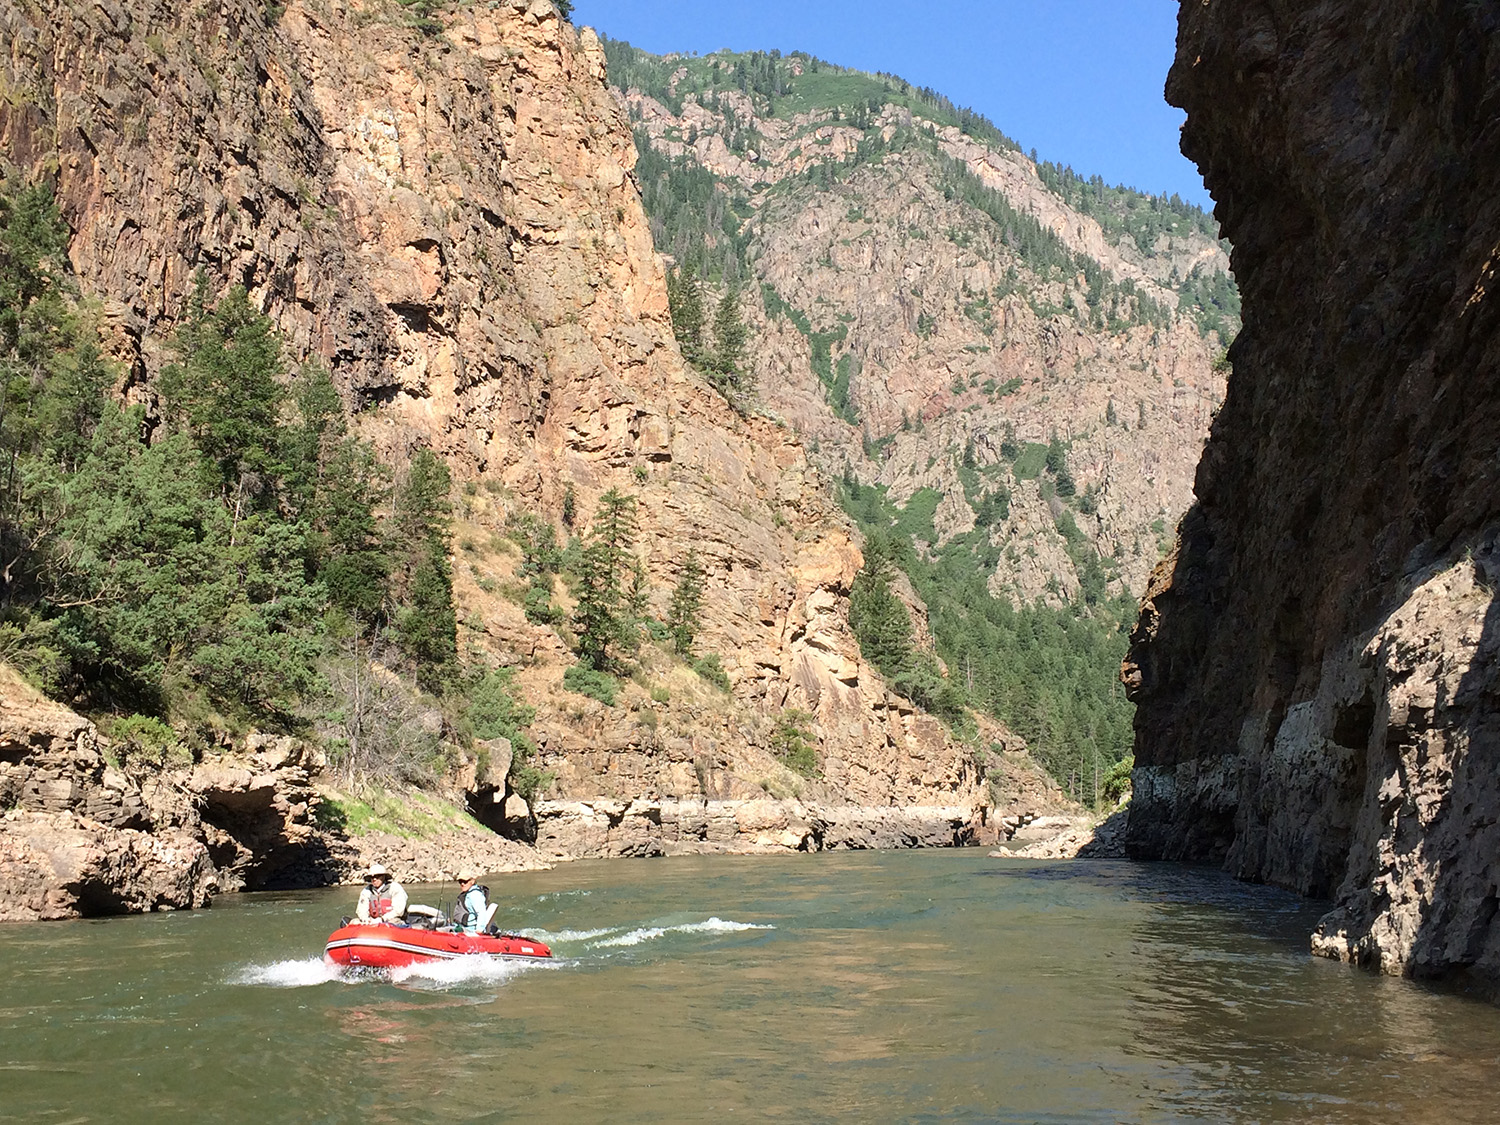 Boating the Gunnison River